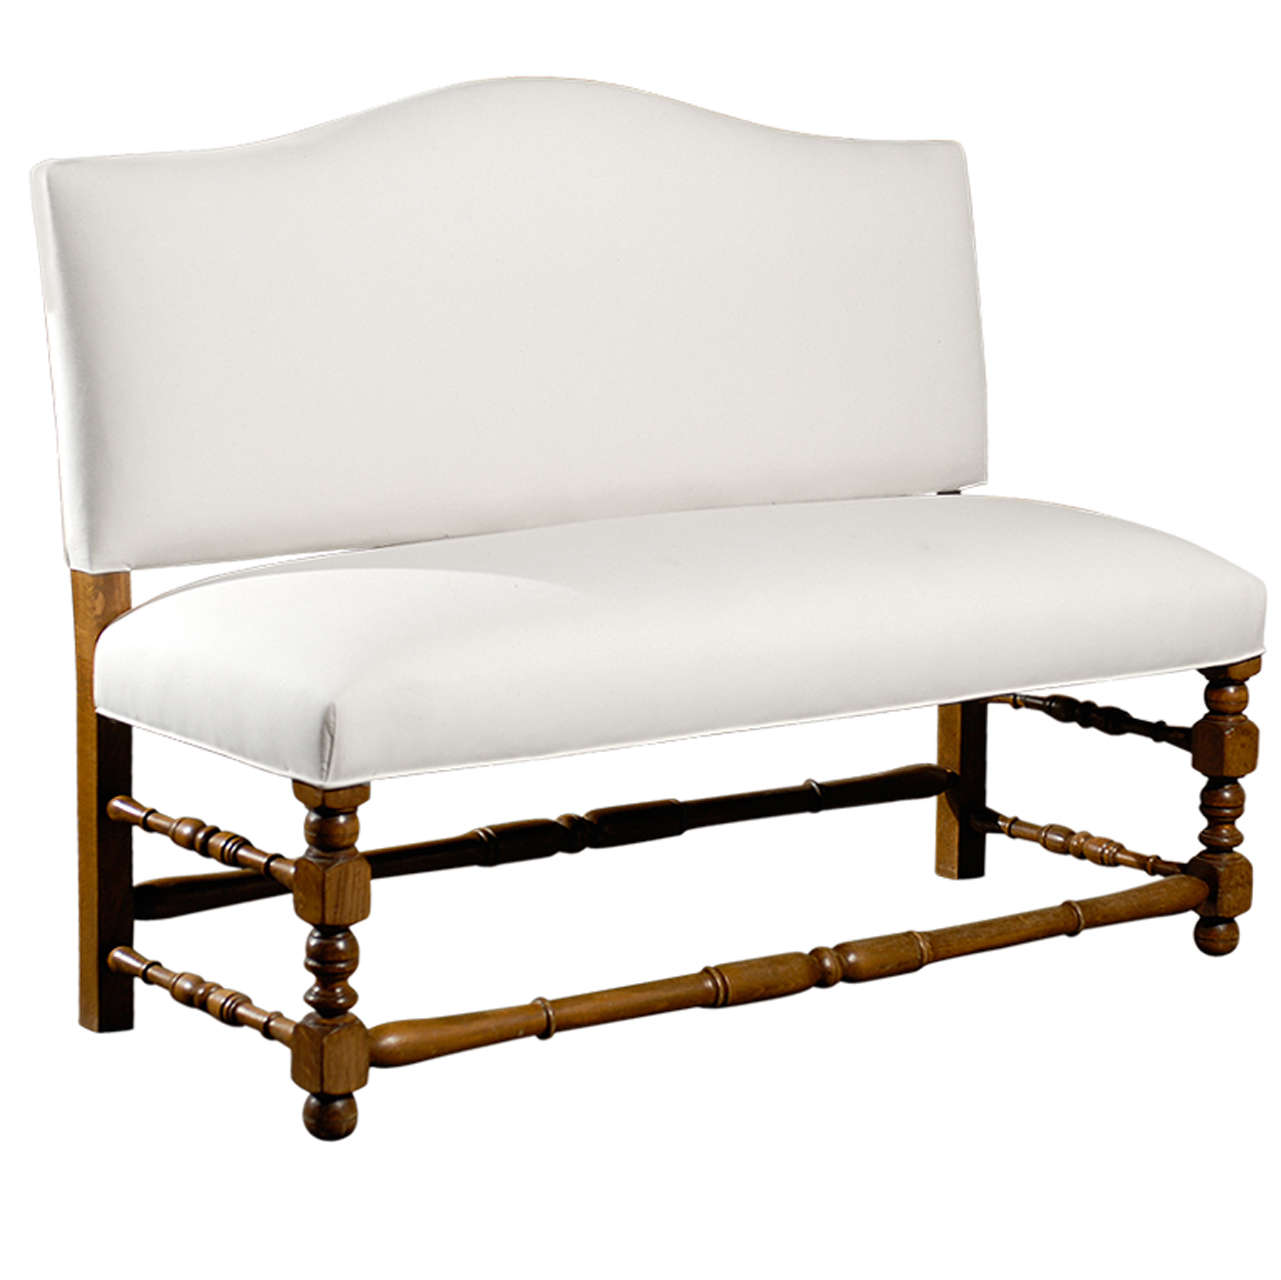 Dining Room Bench Seating With Backs: French Upholstered Bench With Back